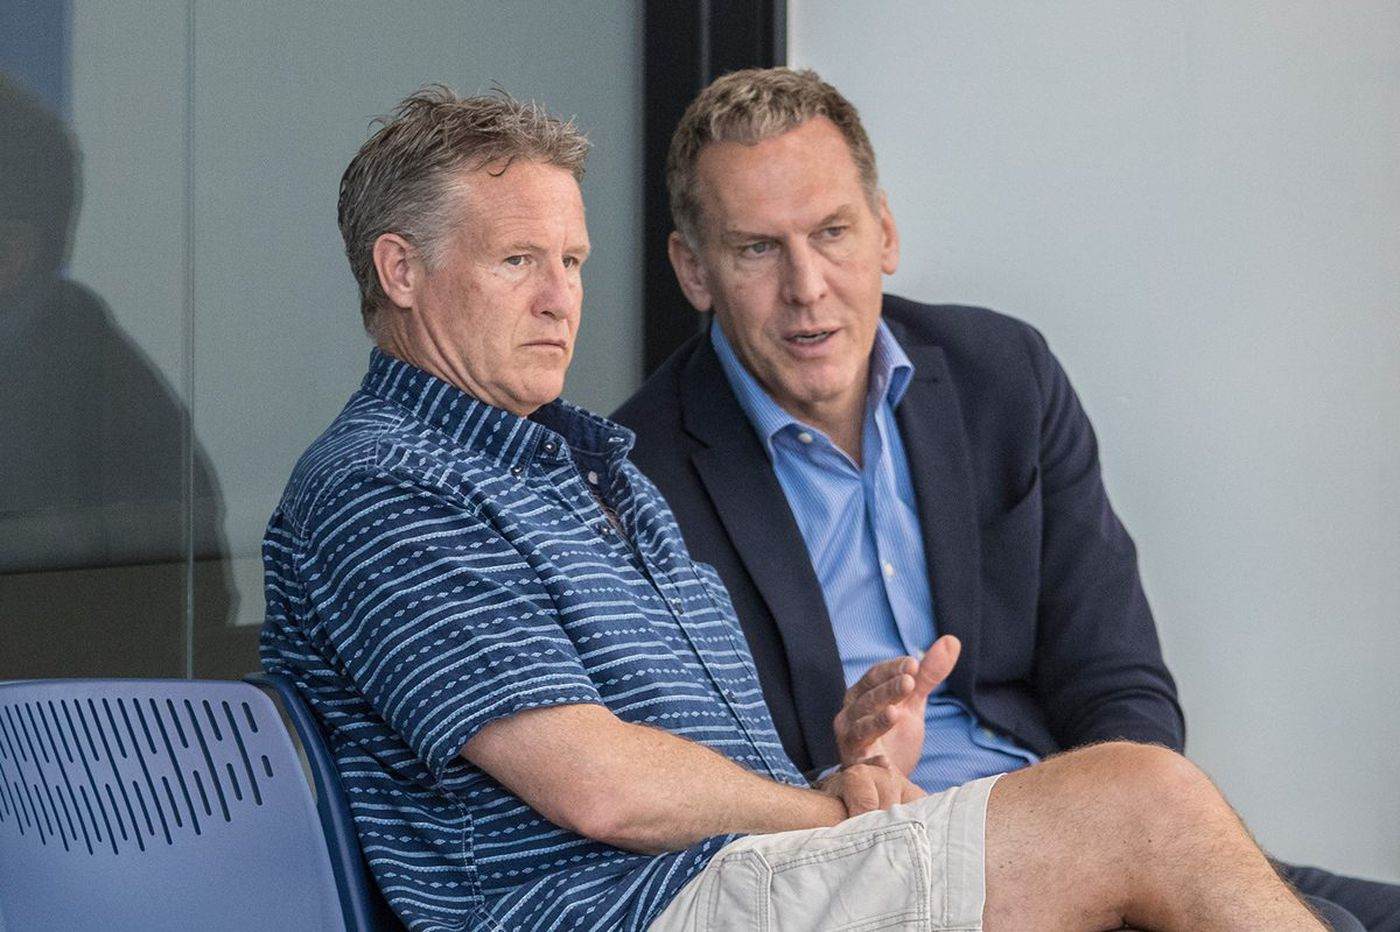 NBA trade deadline: Sixers make no moves, show restraint by keeping roster intact